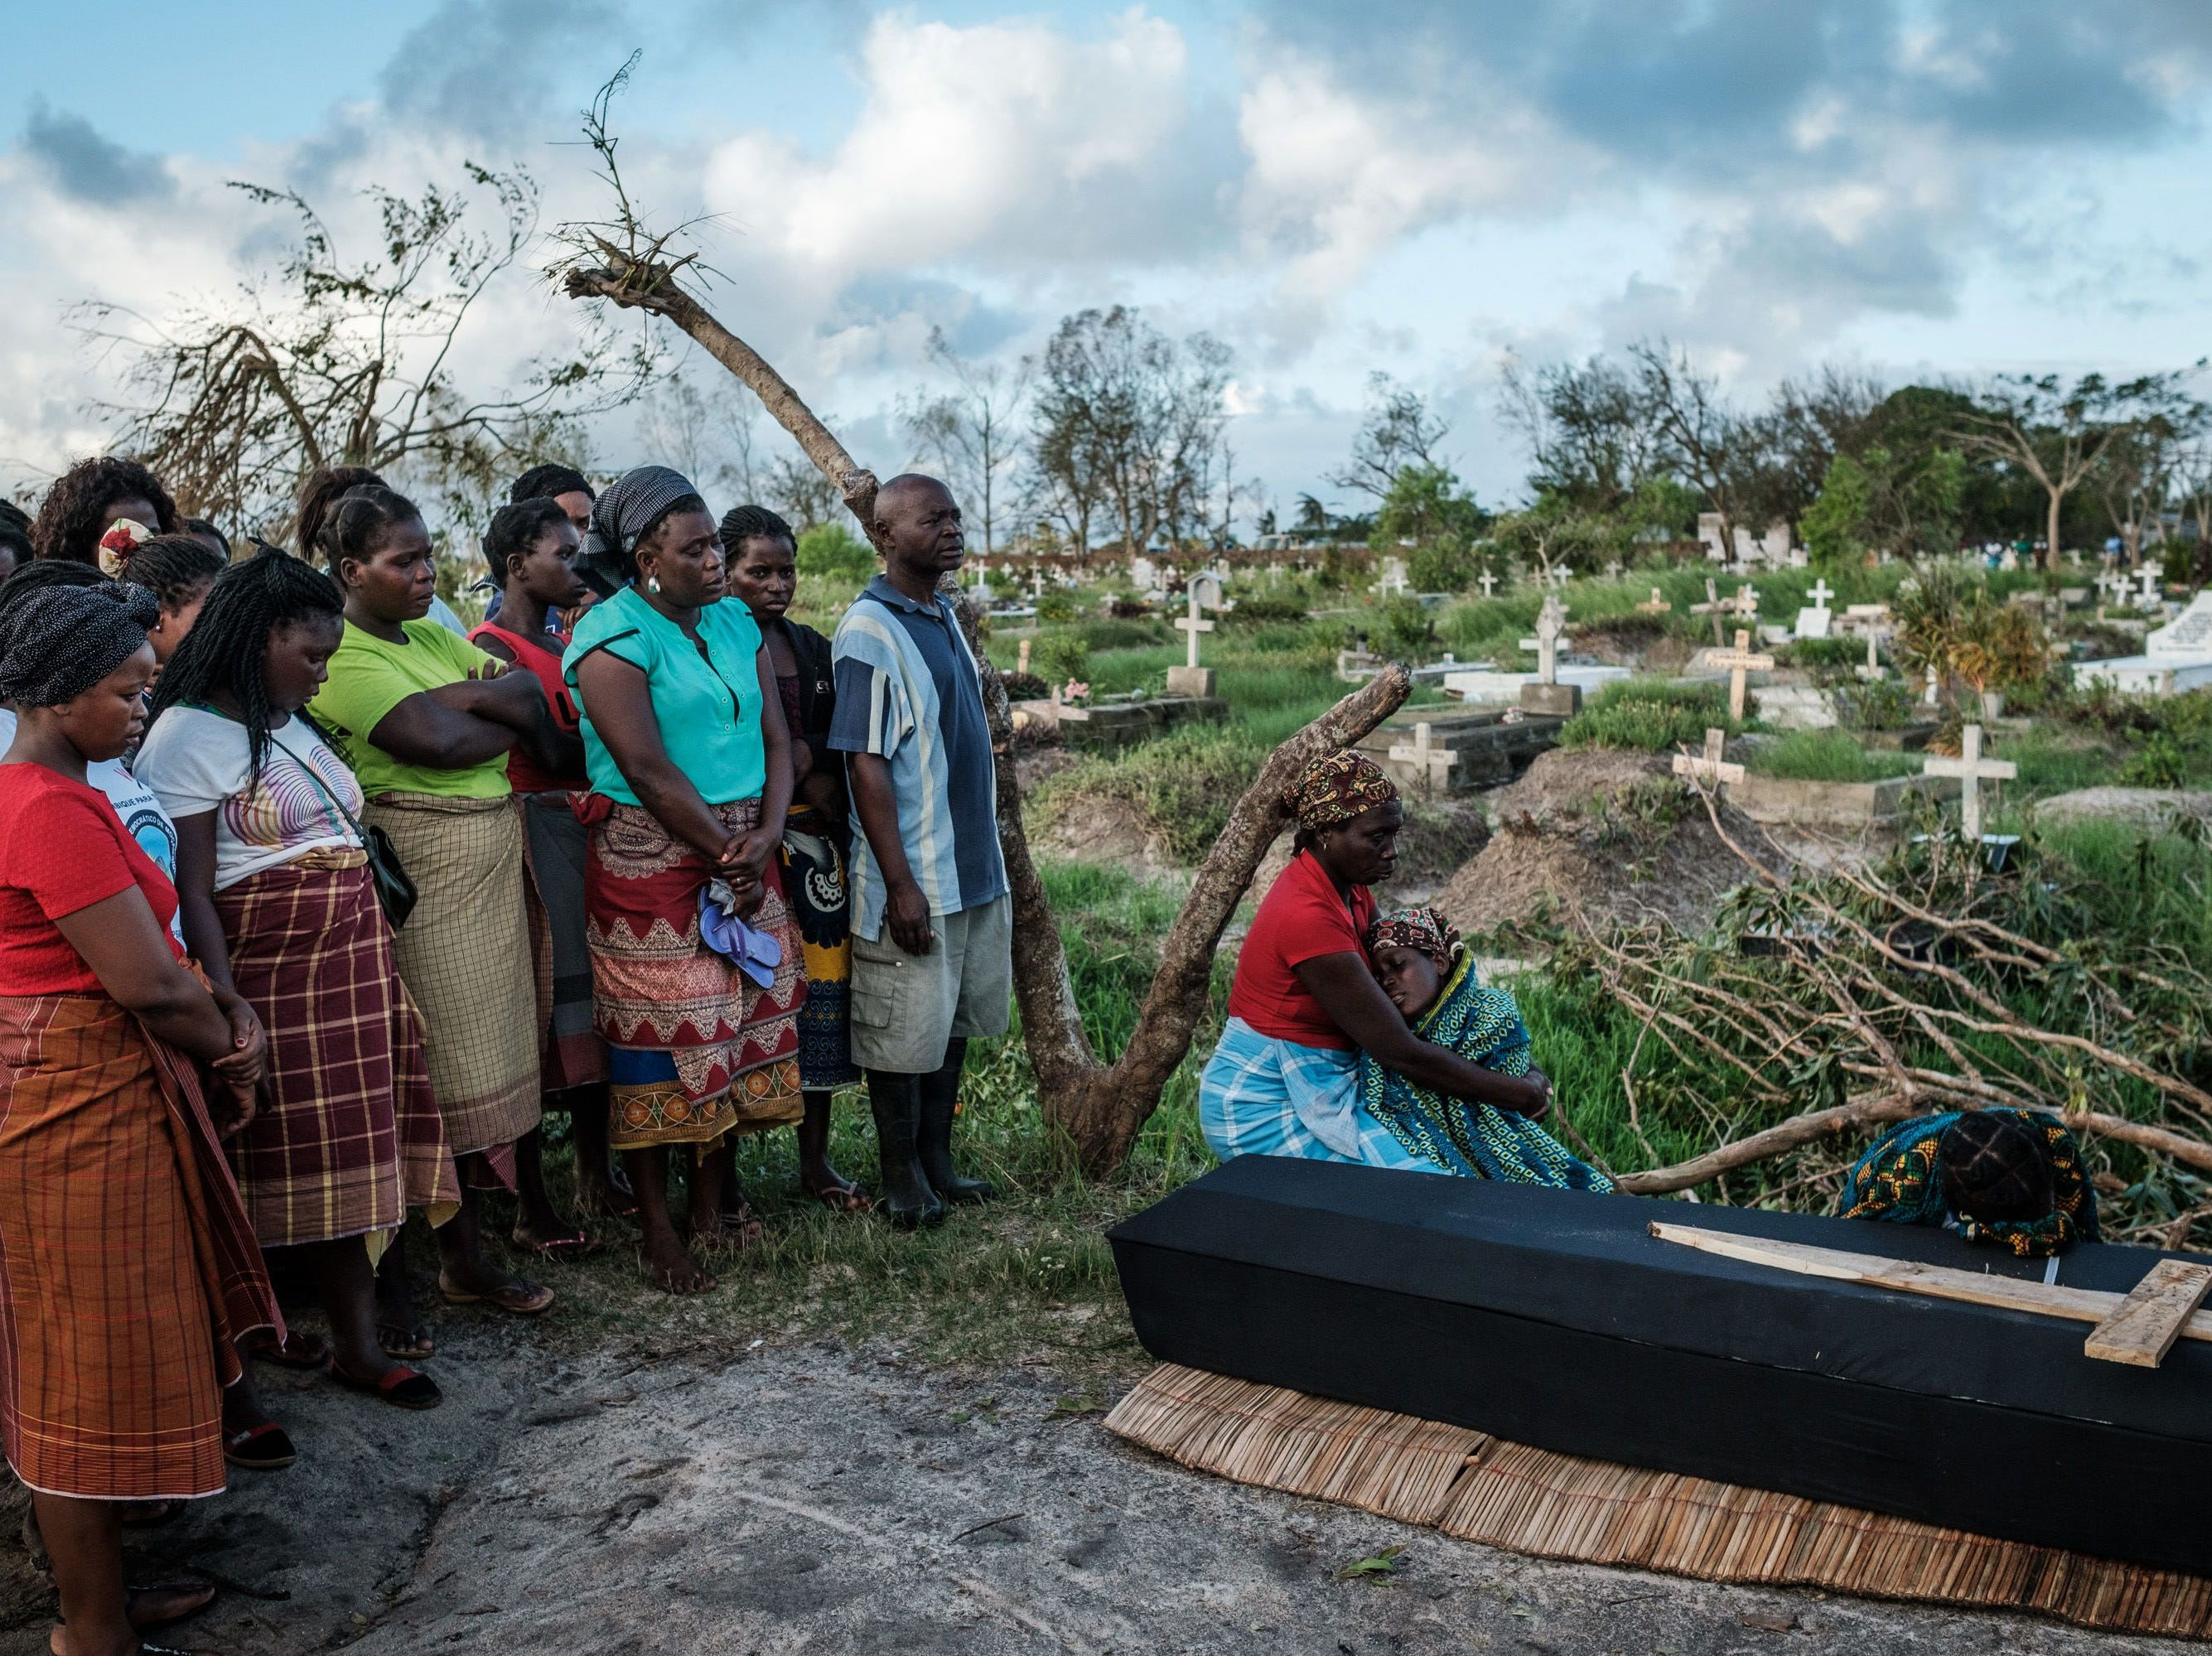 Rebecca Albino (R), a mother of three children, mourns beside the coffin of her husband, Tomas Joaquim Chimukme during his funeral. Five days after tropical cyclone Idai cut a swathe through Mozambique, Zimbabwe and Malawi, the confirmed death toll stood at more than 300 and hundreds of thousands of lives were at risk, officials said.